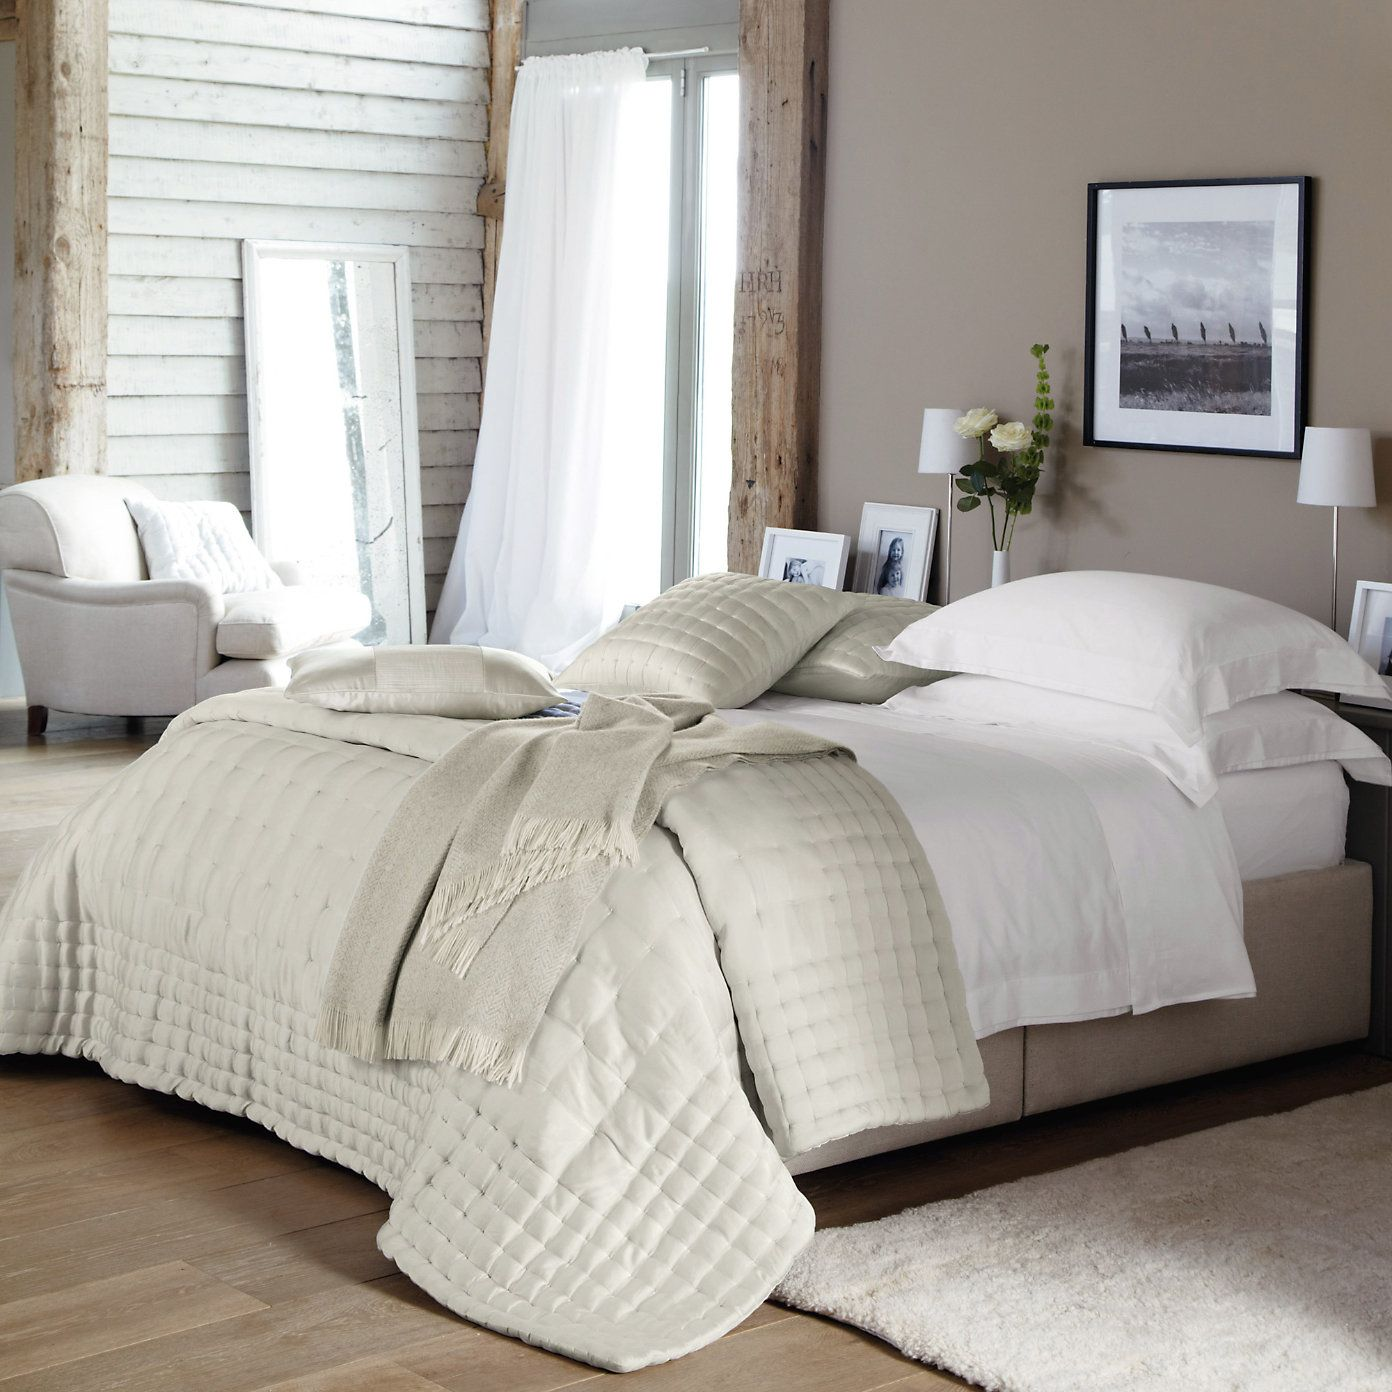 Buy Bedspreads & Cushions Collection > Bedspreads